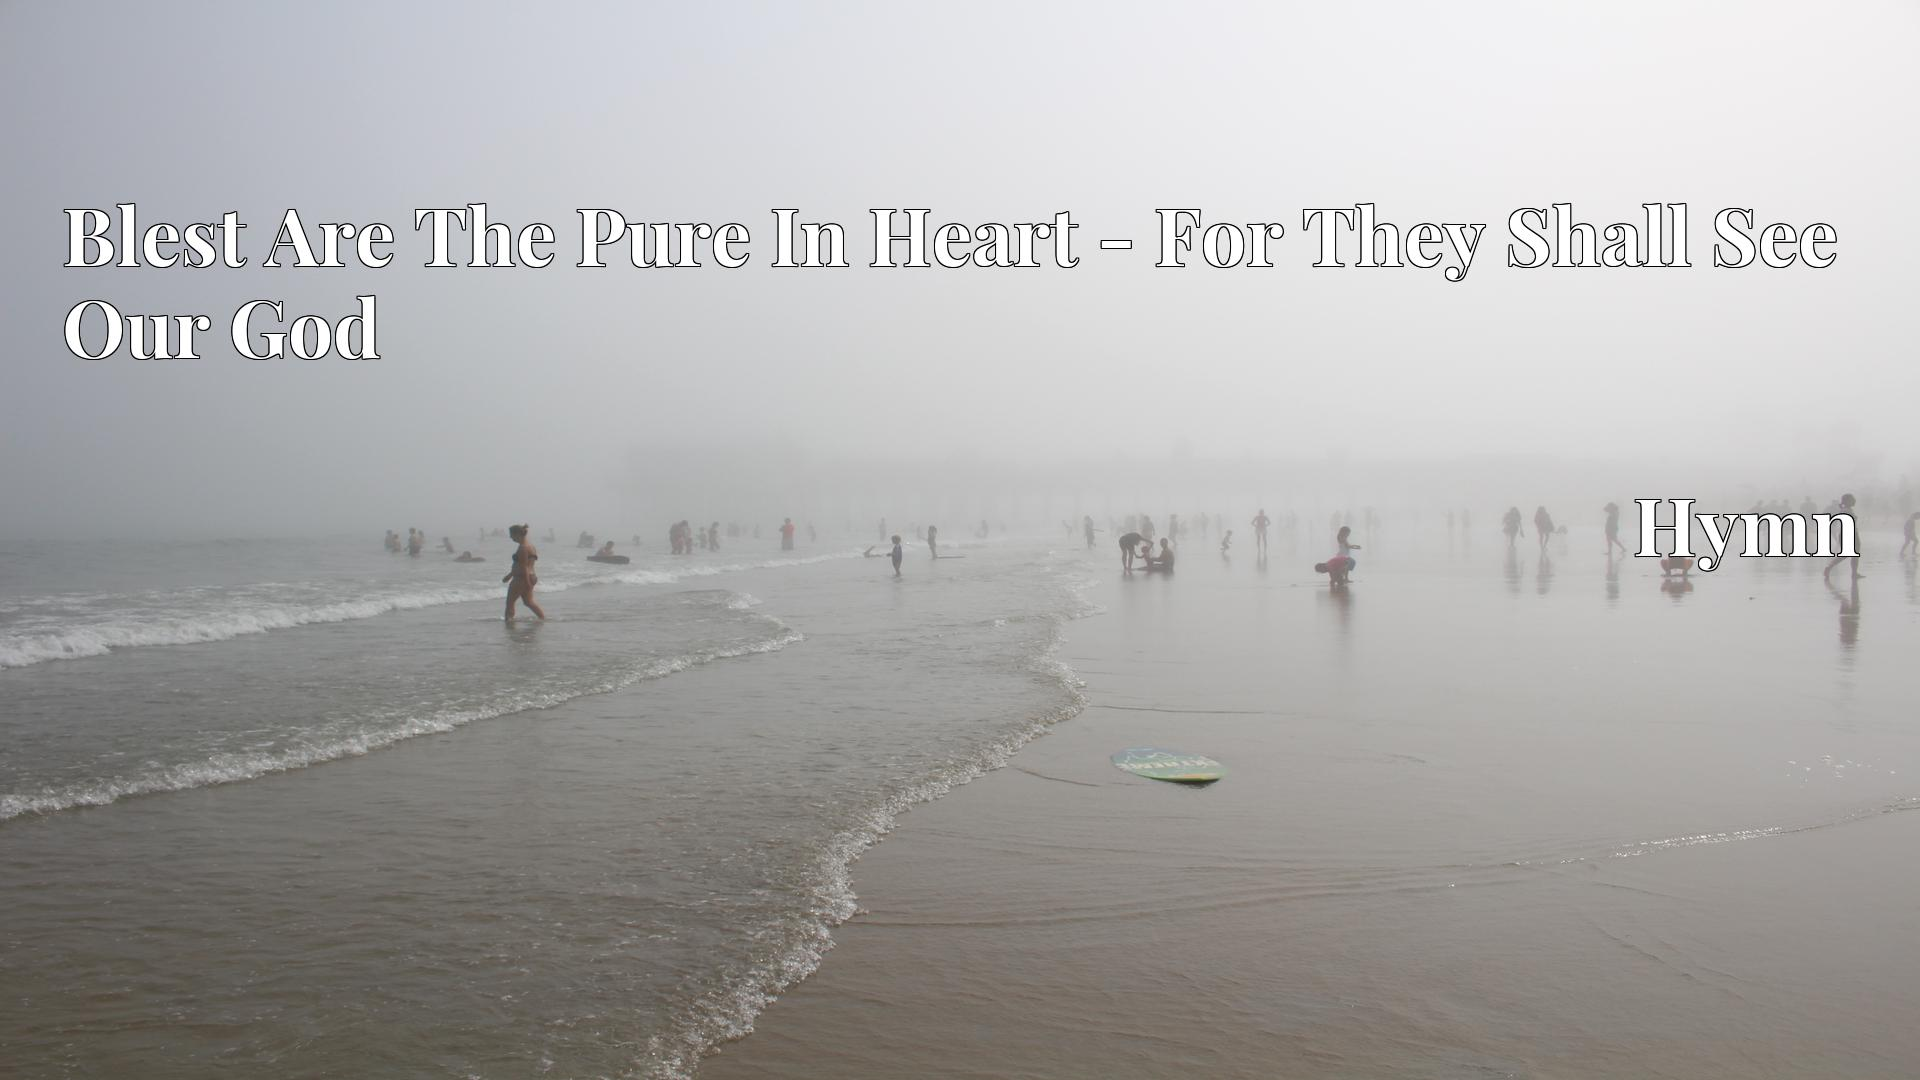 Blest Are The Pure In Heart - For They Shall See Our God - Hymn